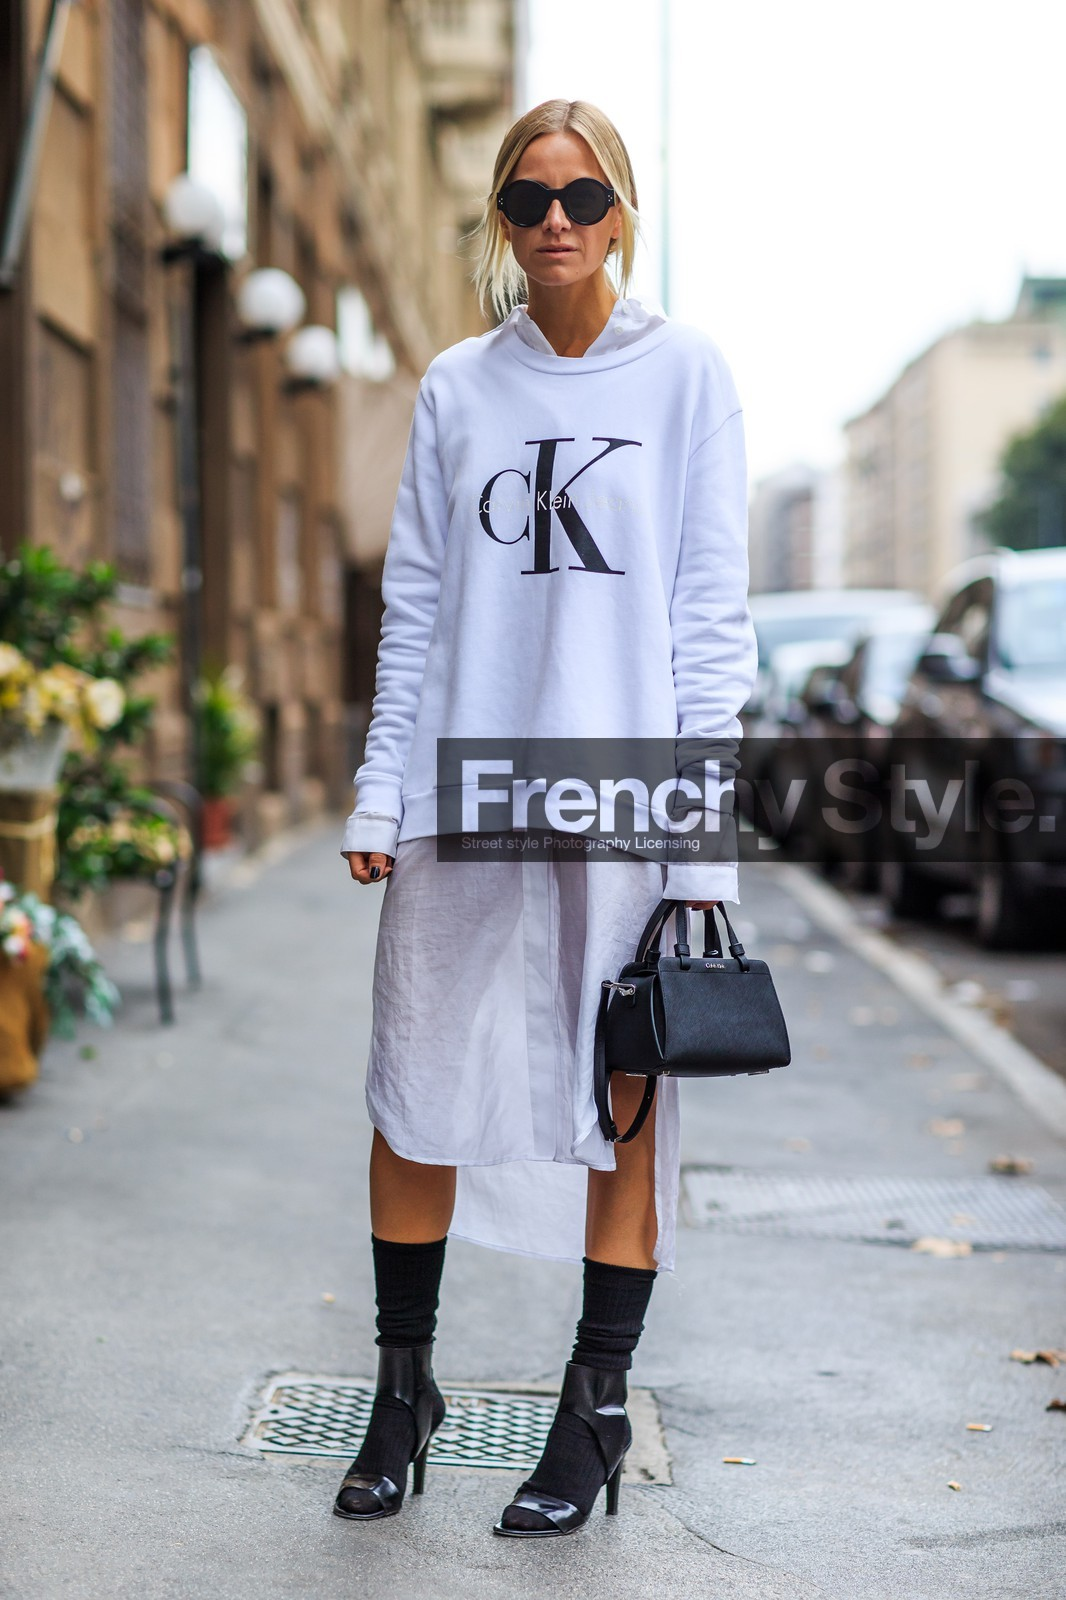 Frenchy style street style by jonathan paciullo Celine fashion street style